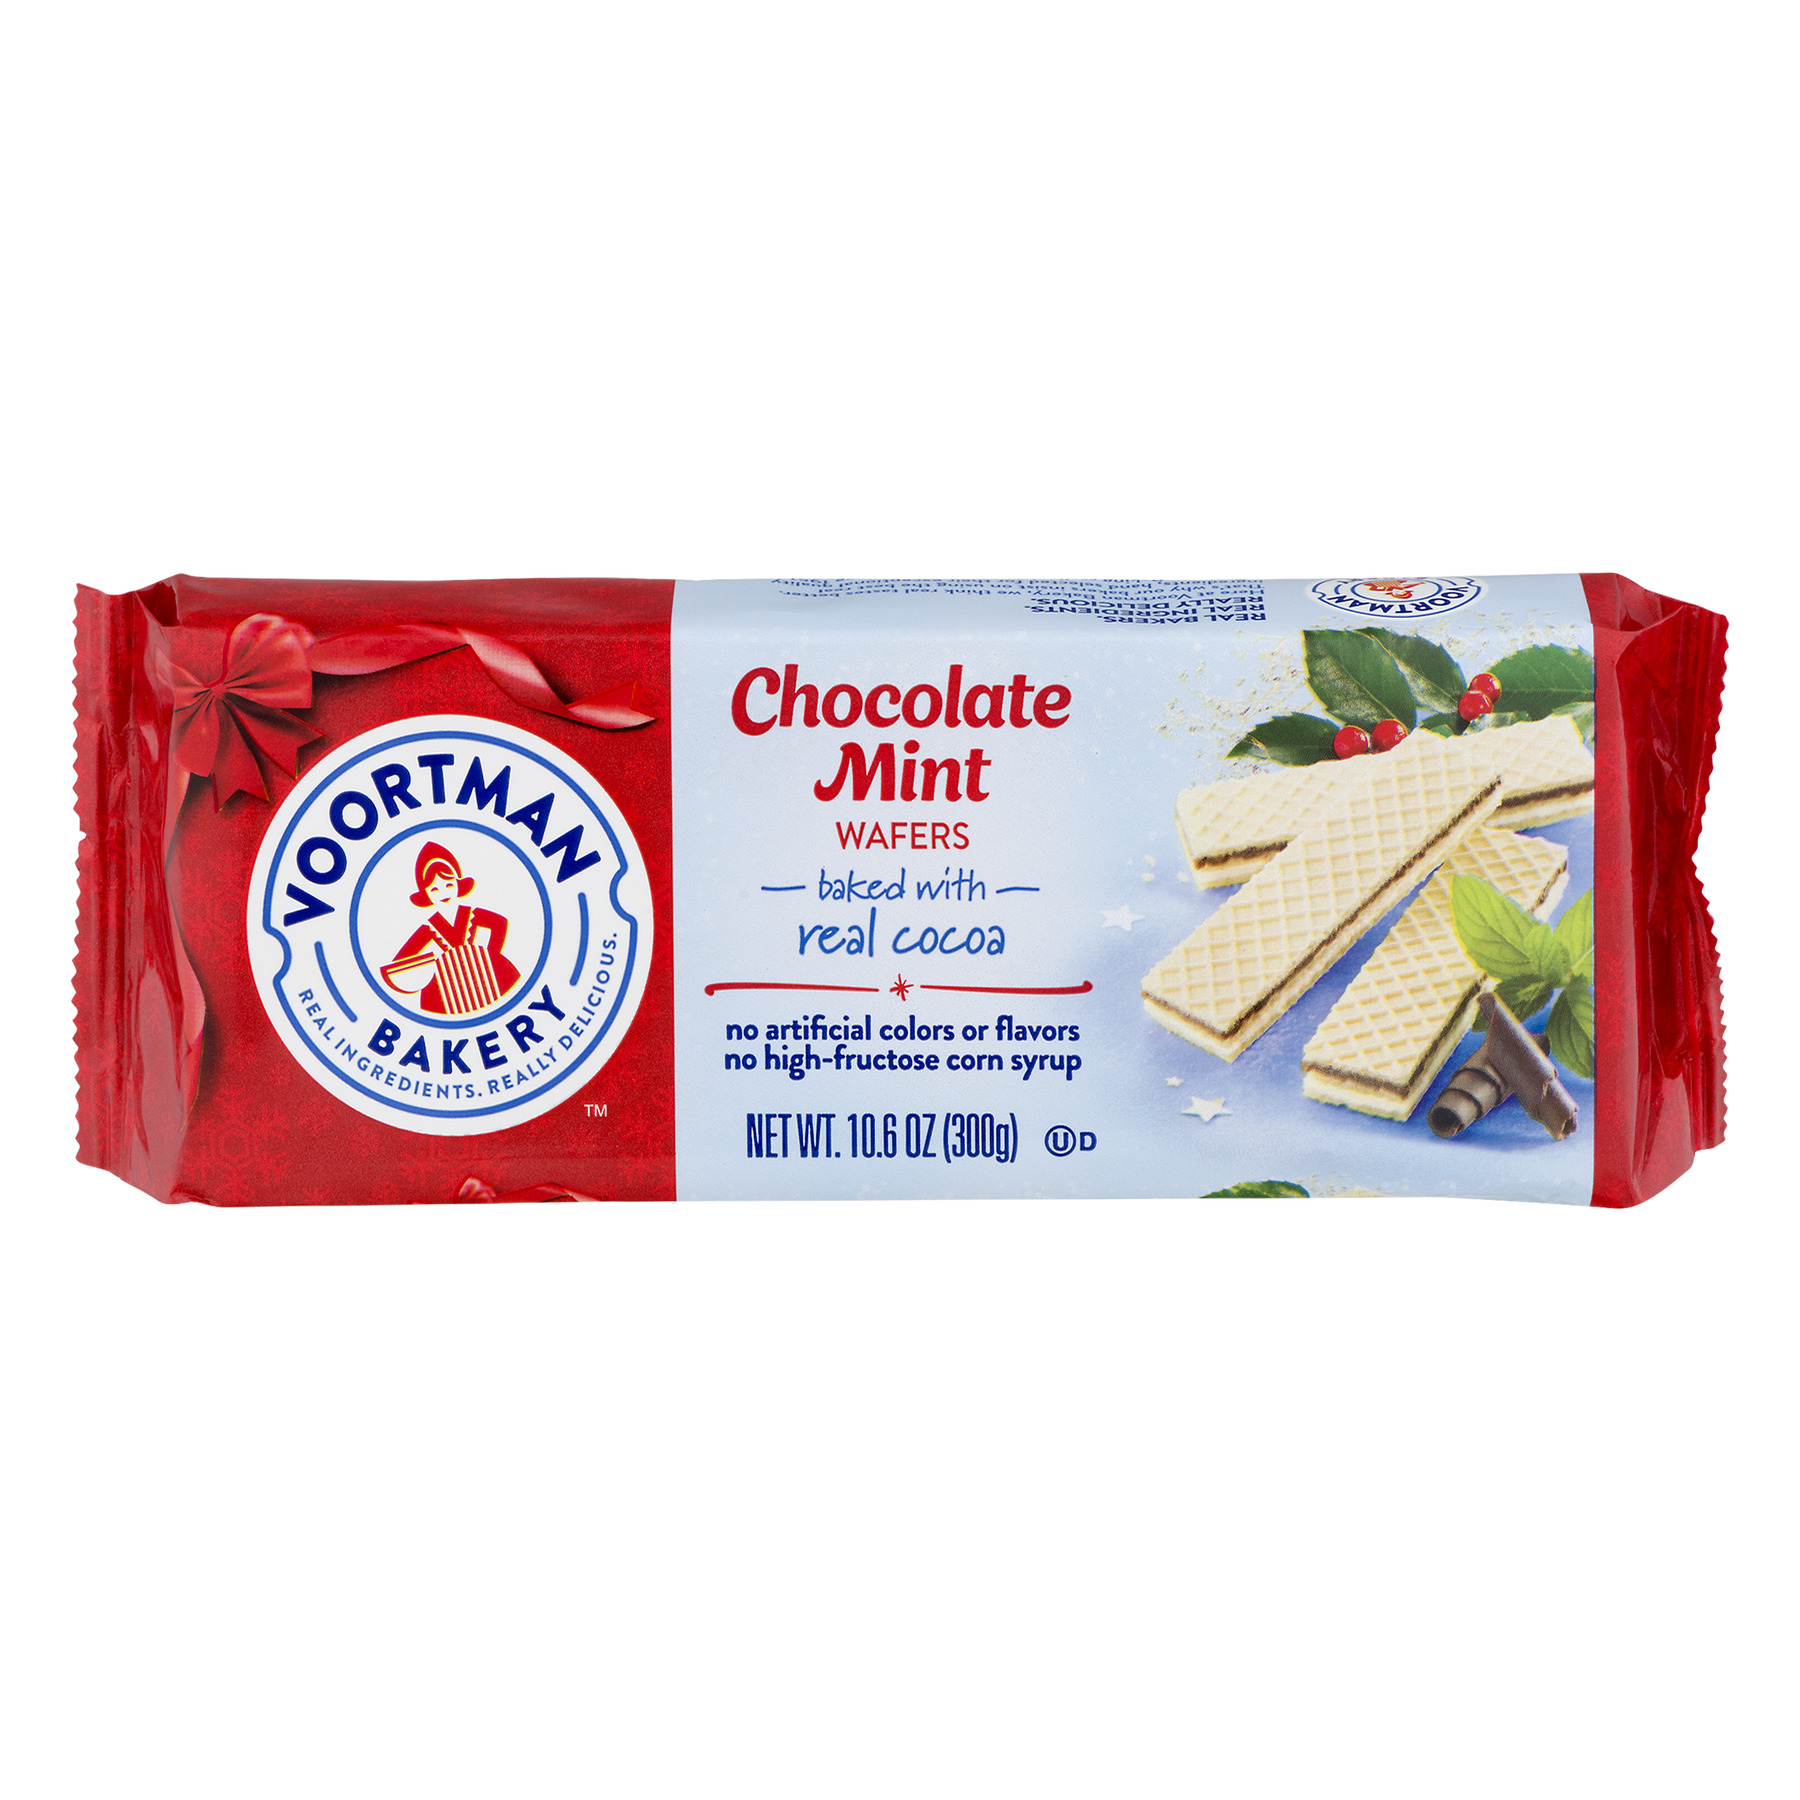 Voortman Chocolate Mint Real Cocoa Wafers, 10.6 Oz.